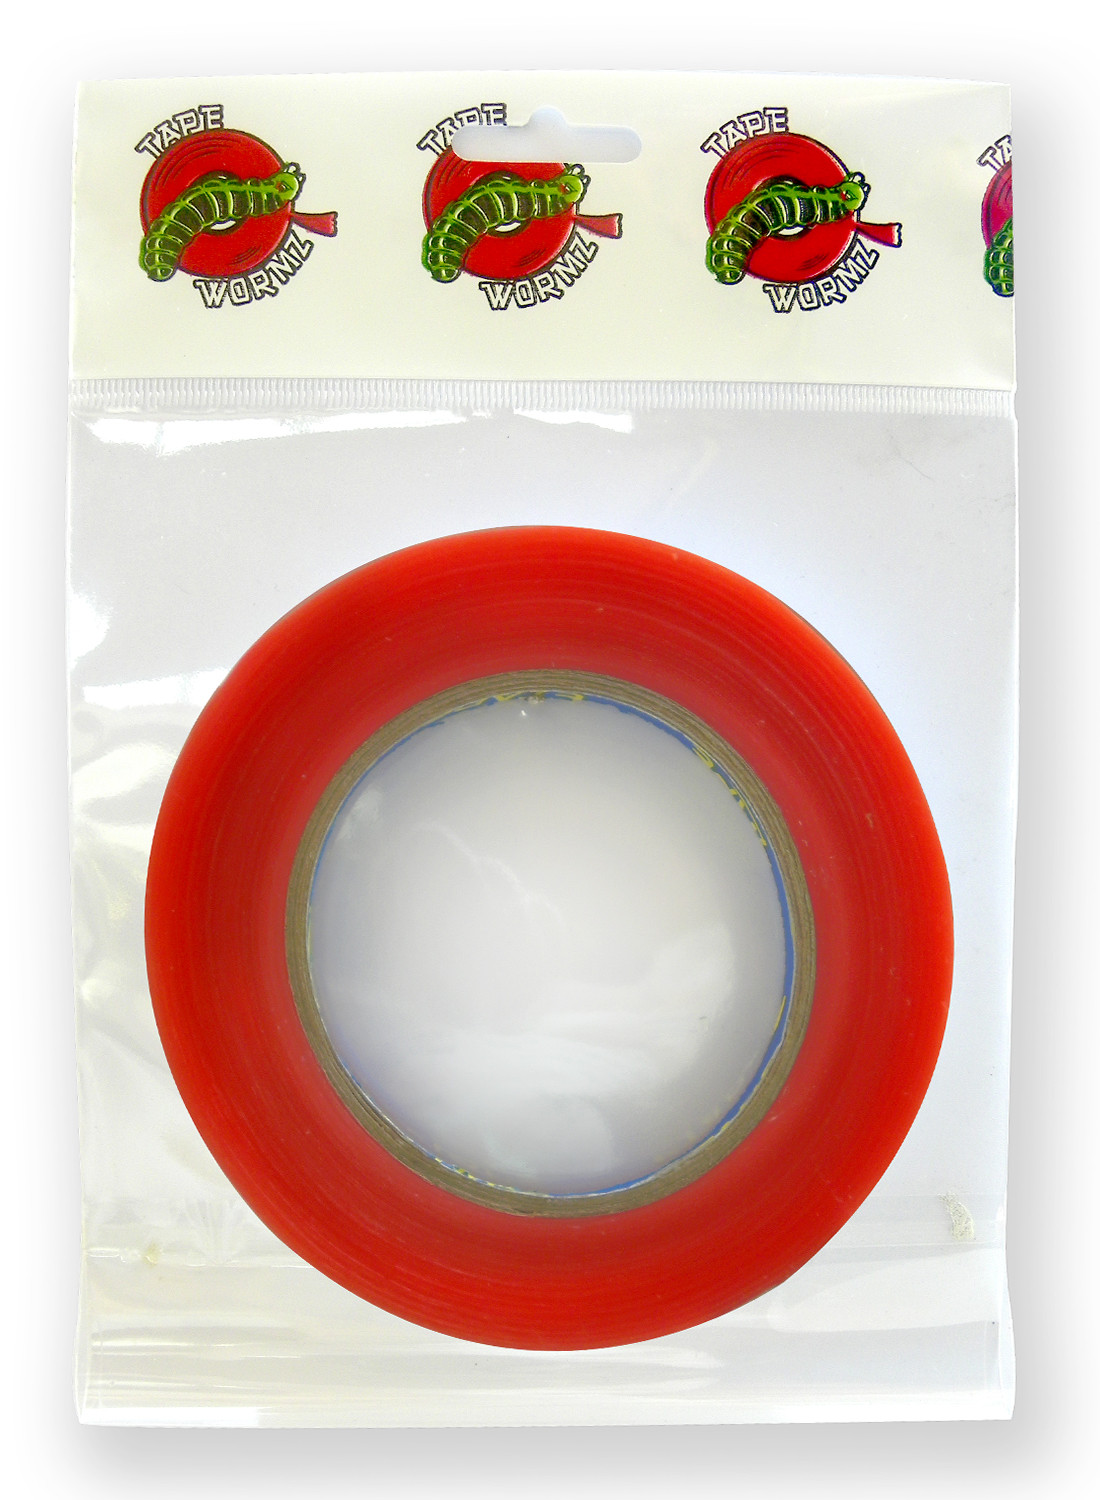 Introducing Tape Wormz Adhesive Tapes